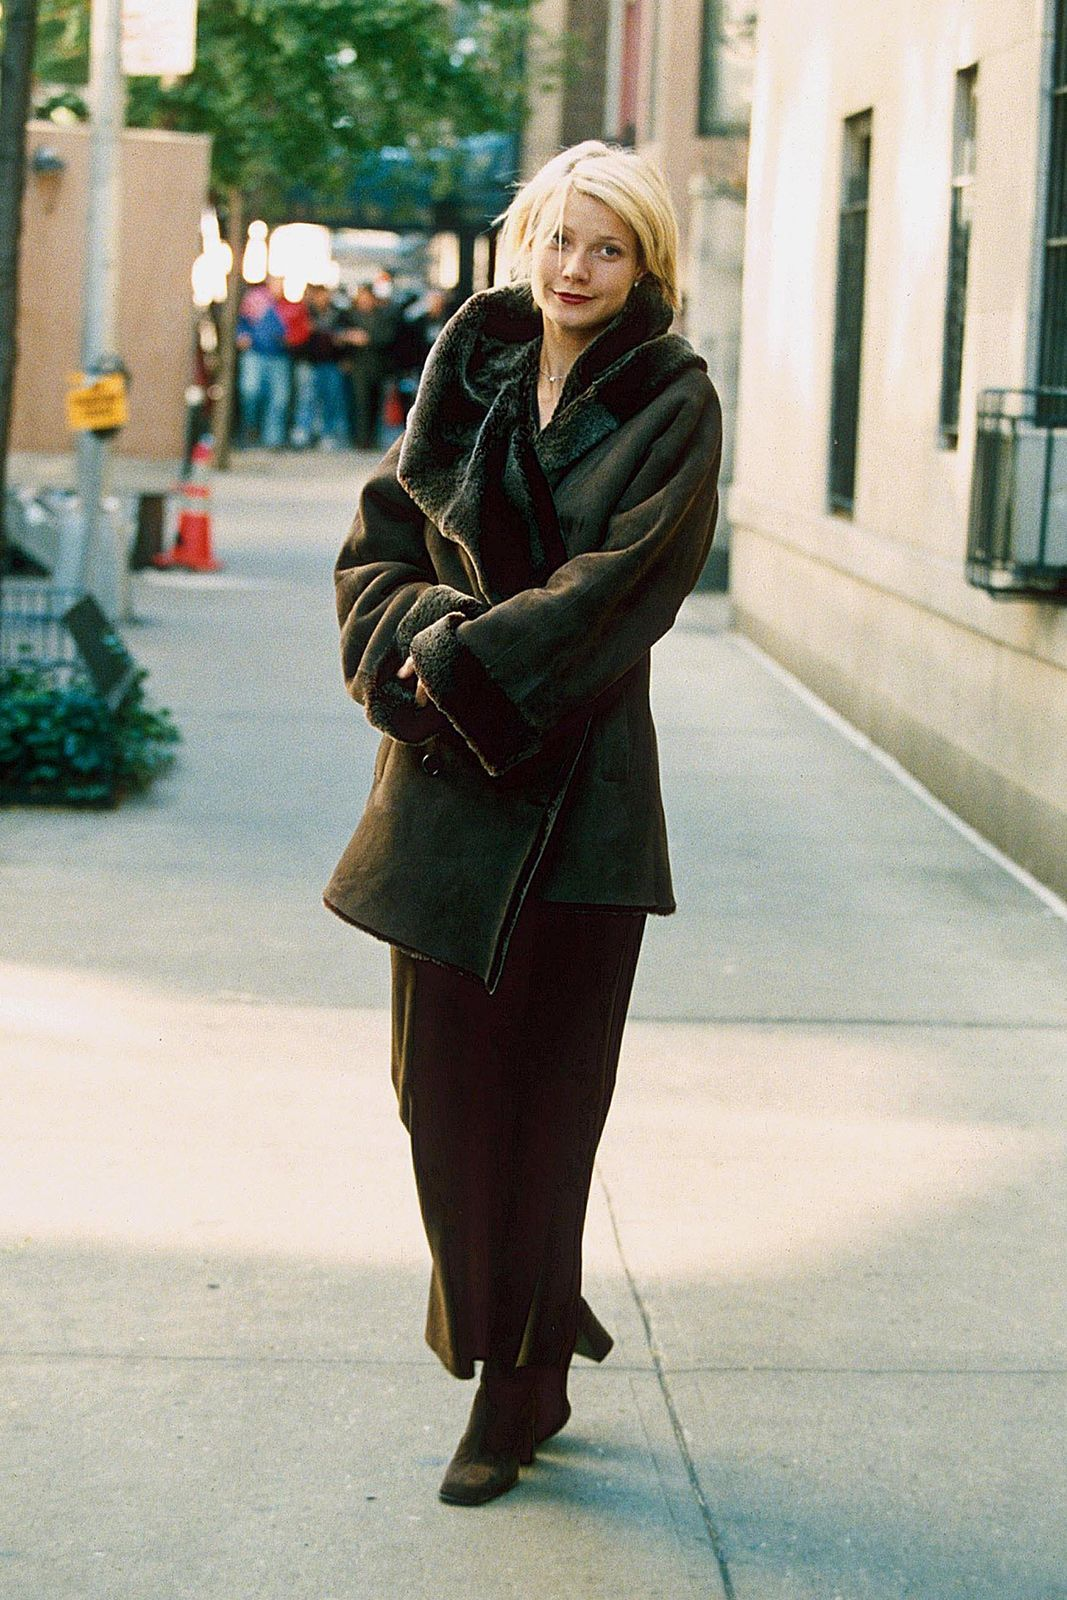 30+ Times '90s Gwyneth Paltrow Was Our Style Crush